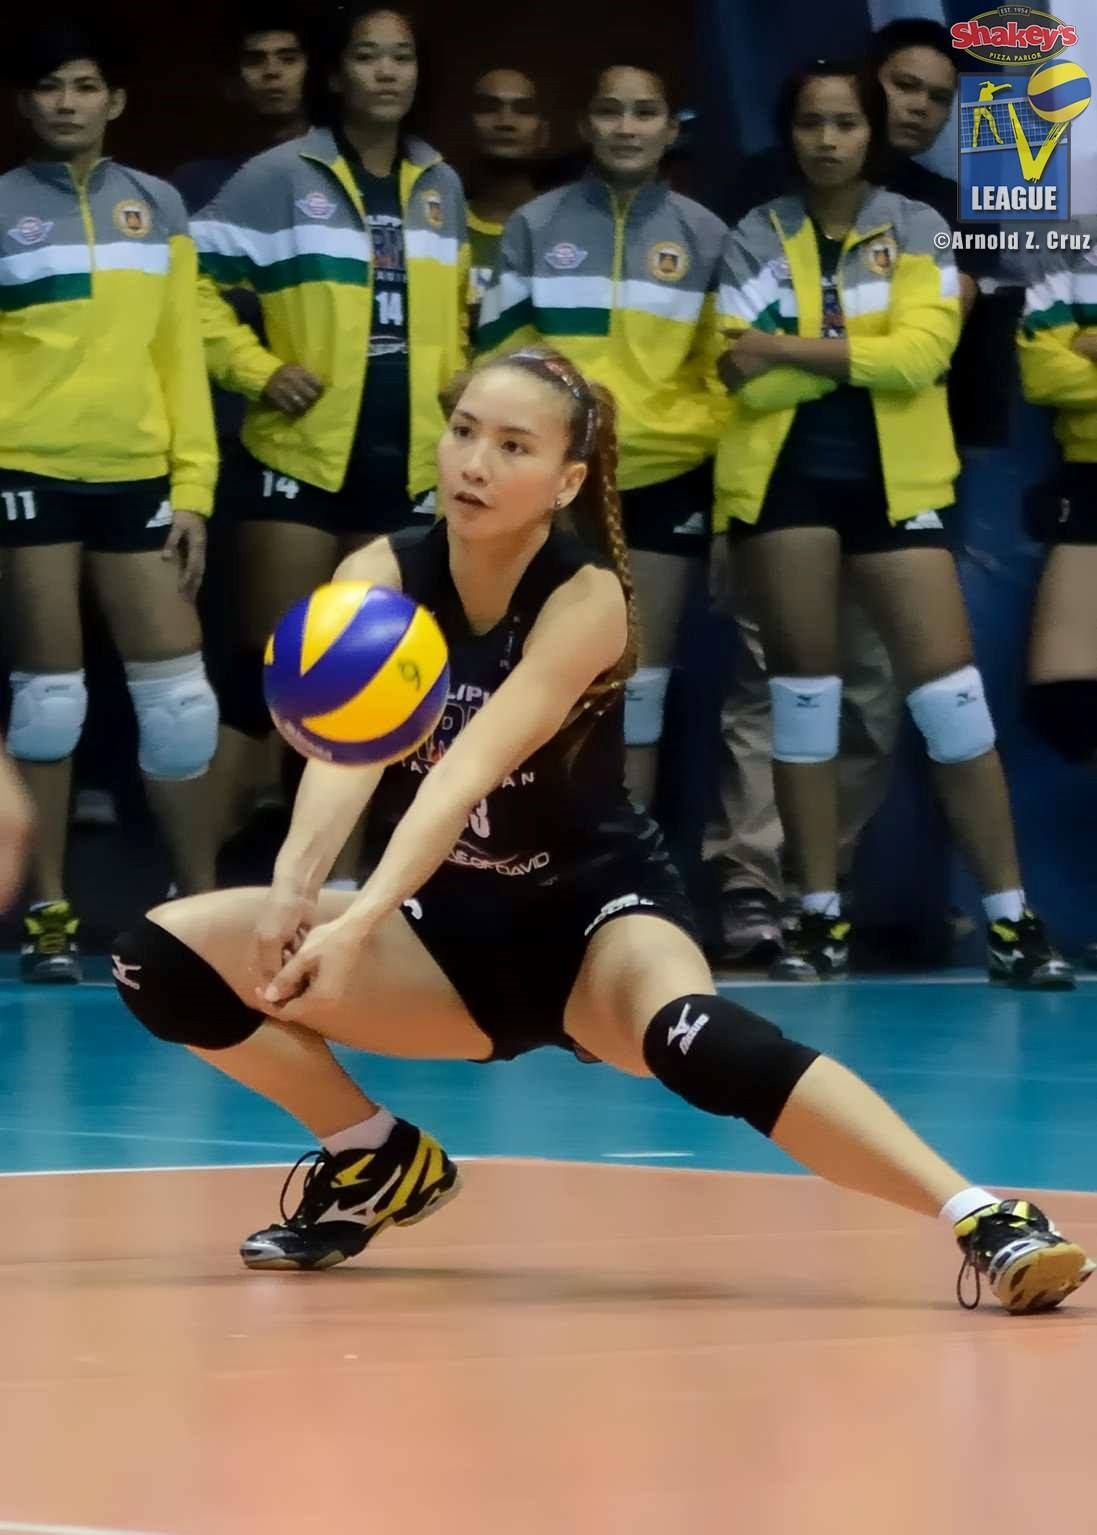 Daquis Volleyball Players Beach Volleyball Sports